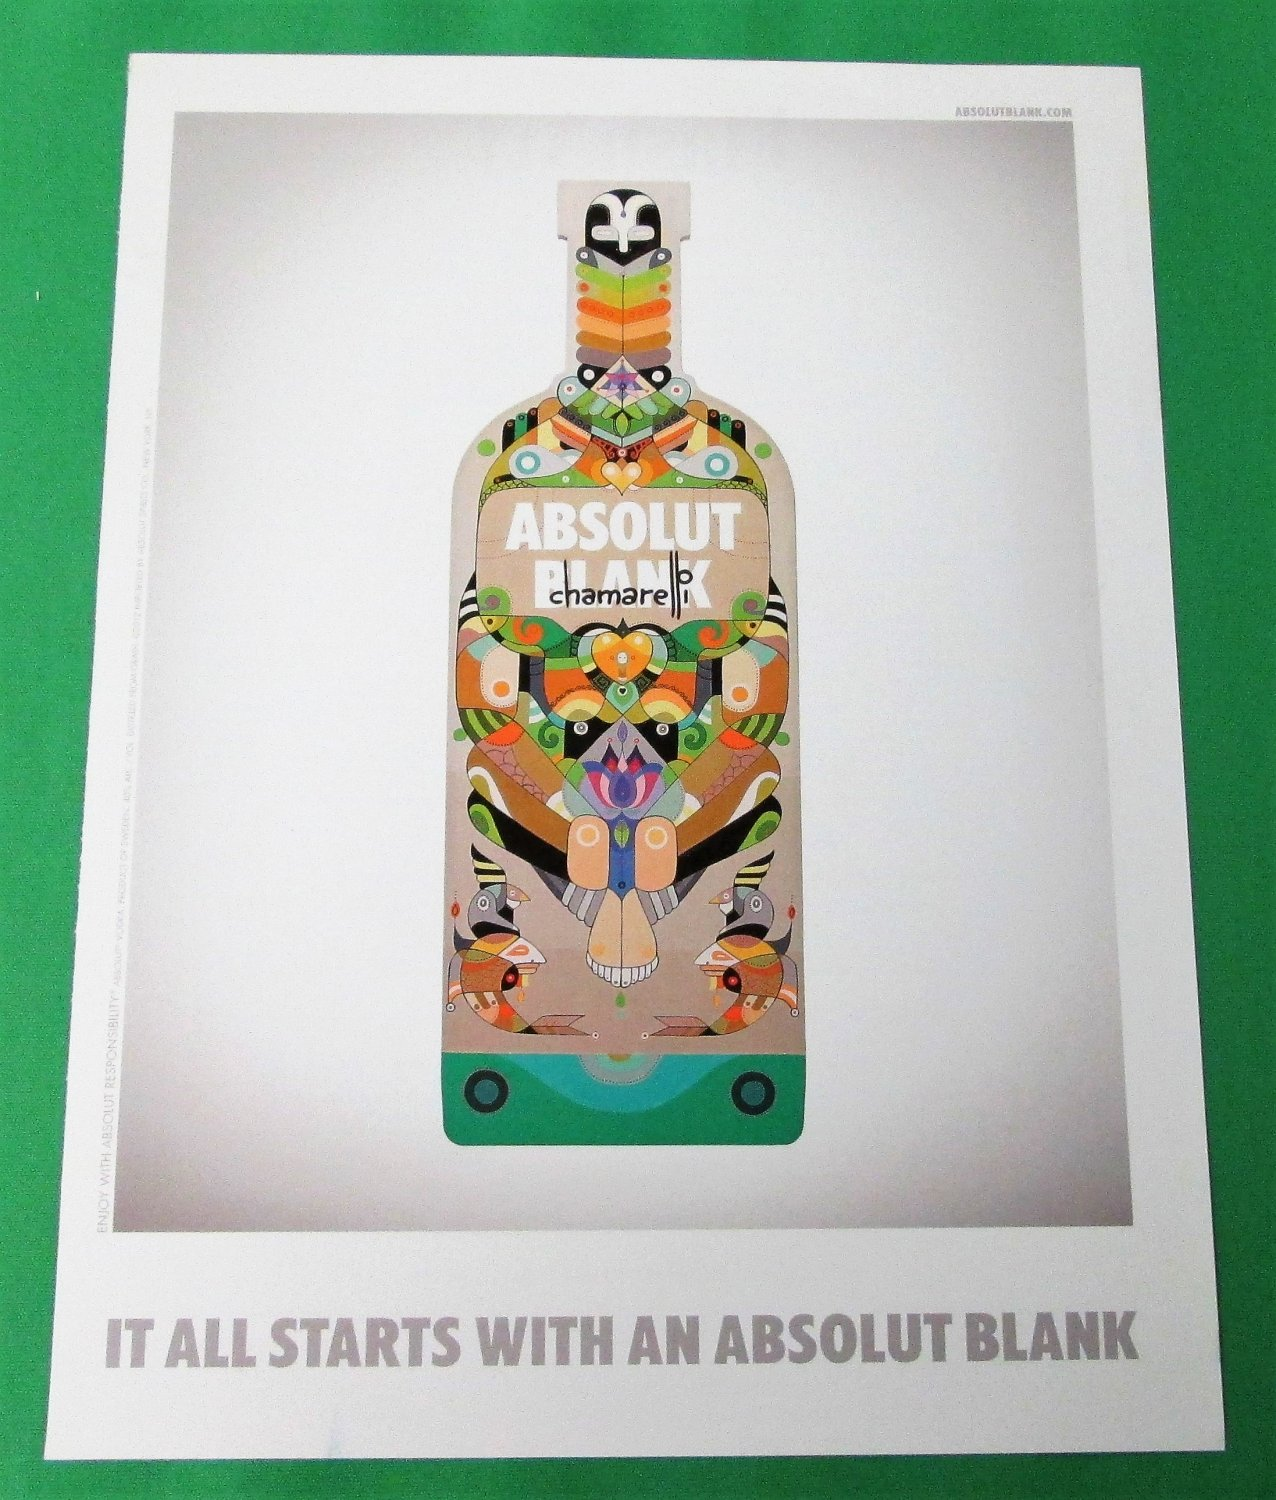 IT ALL STARTS WITH AN ABSOLUT BLANK Italian Vodka Magazine Ad CHAMARELLI VERSION